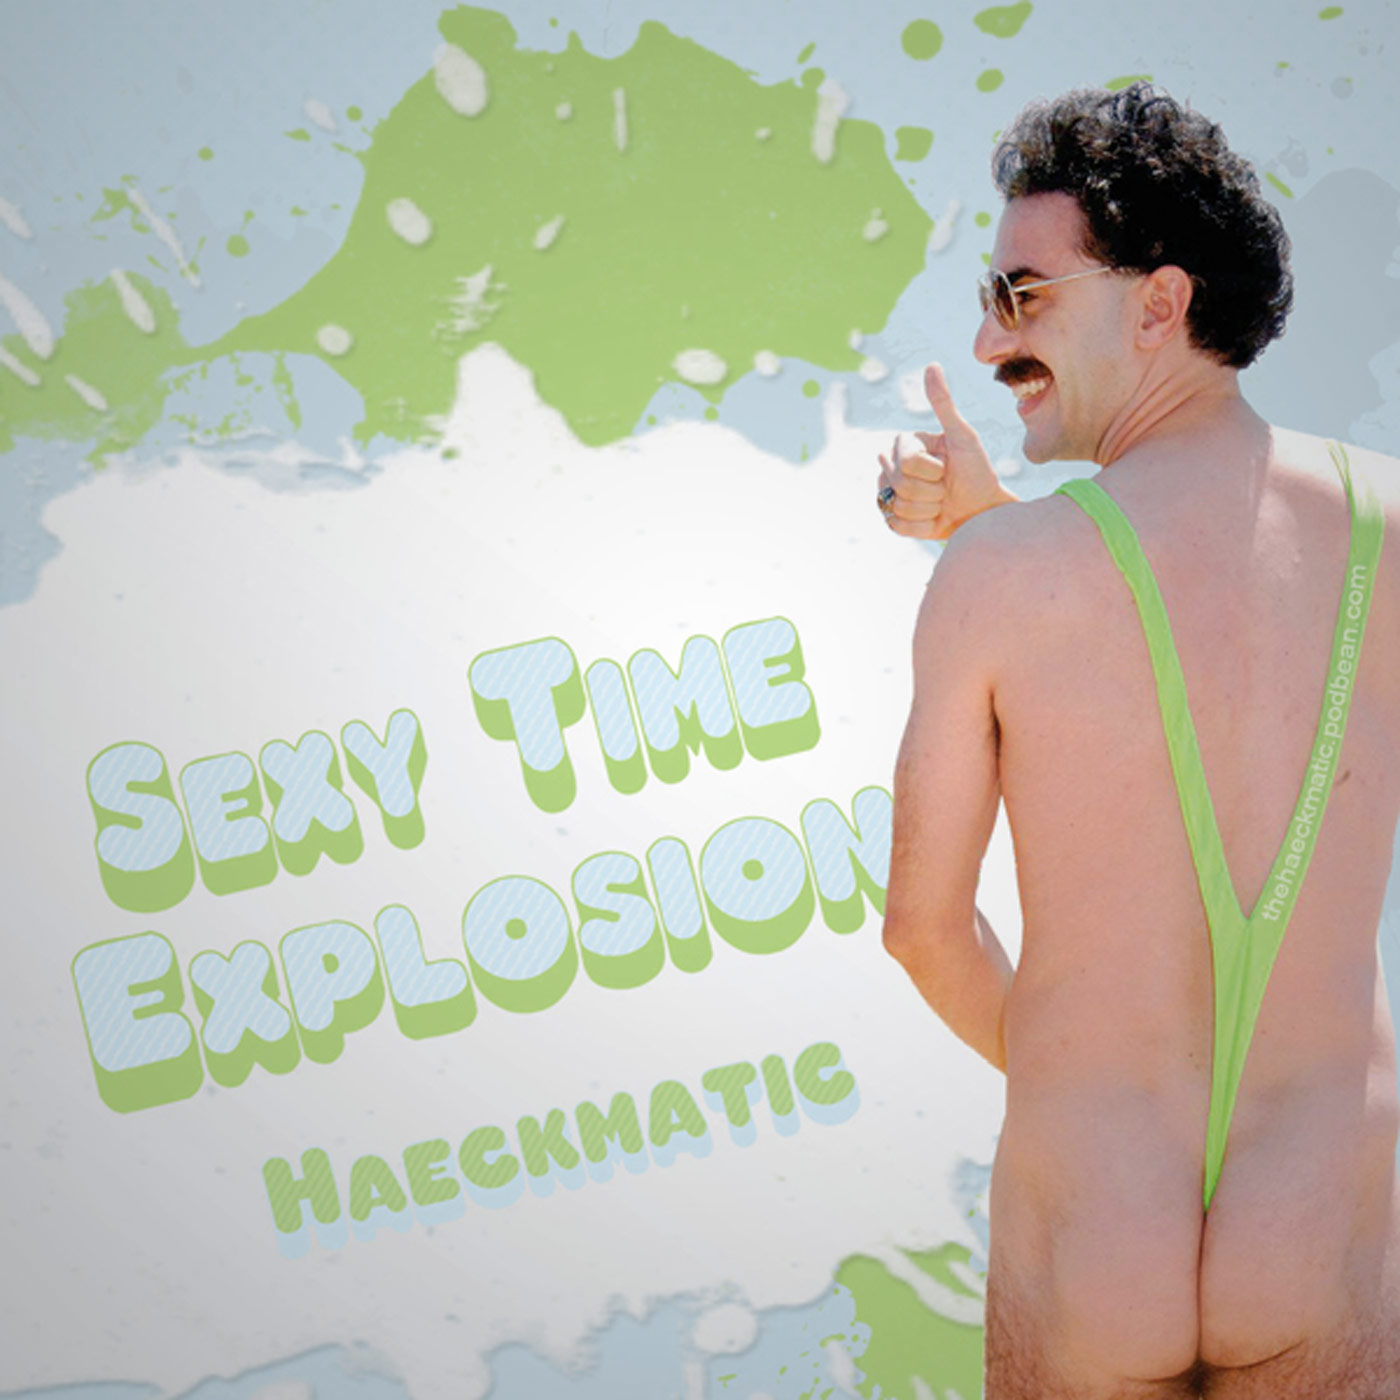 Sexy Time Explosion - Haeckmatic